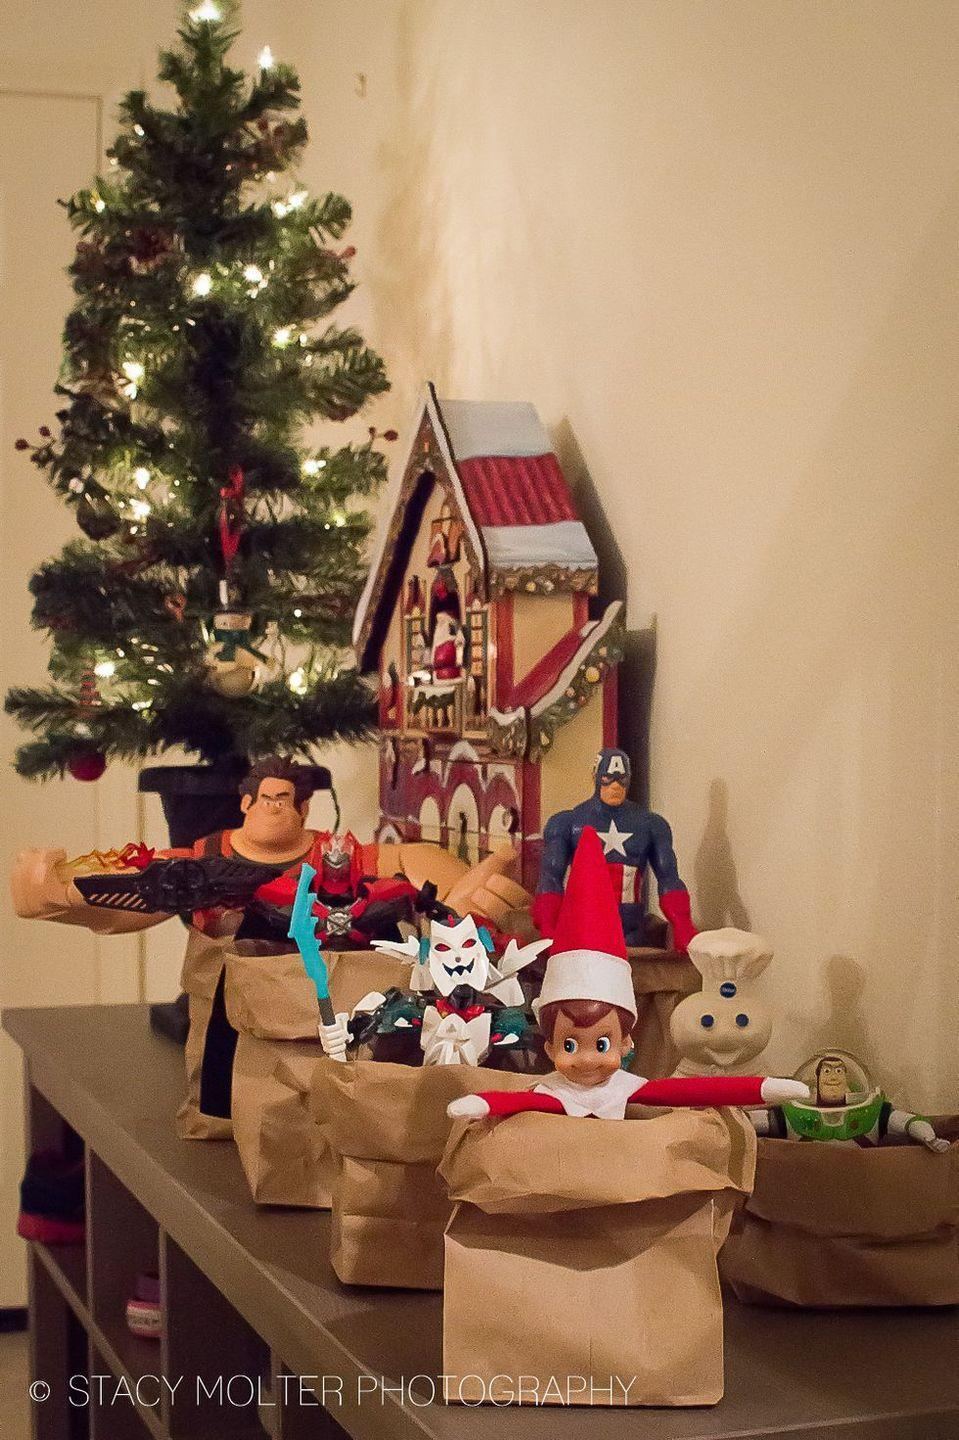 """<p>If your Elf has friends, here's a fun way to let them in on the Christmas mischief: Host a sack race!</p><p><strong>Get the tutorial at <a href=""""https://californiaunpublished.com/45-amazingly-easy-elf-on-the-shelf-ideas-for-busy-moms/"""" rel=""""nofollow noopener"""" target=""""_blank"""" data-ylk=""""slk:California Unpublished"""" class=""""link rapid-noclick-resp"""">California Unpublished</a>.</strong></p><p><a class=""""link rapid-noclick-resp"""" href=""""https://www.amazon.com/Small-Brown-Paper-Bags-Pack/dp/B00GVL4SDW?tag=syn-yahoo-20&ascsubtag=%5Bartid%7C10050.g.22690552%5Bsrc%7Cyahoo-us"""" rel=""""nofollow noopener"""" target=""""_blank"""" data-ylk=""""slk:SHOP PAPER BAGS"""">SHOP PAPER BAGS</a></p>"""